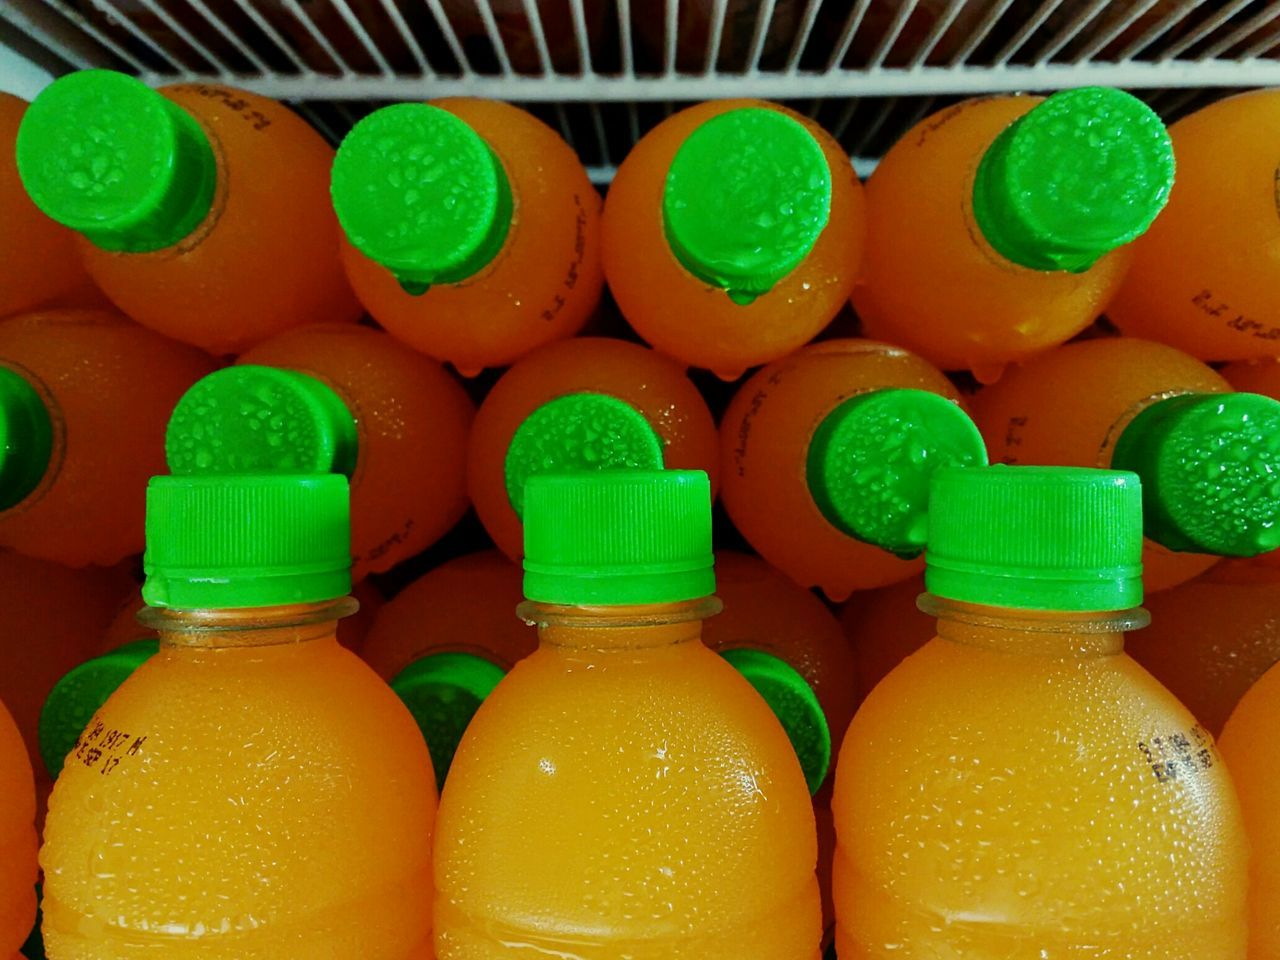 Seriously? What's with them bottles these days? Food And Drink Green Color Bottle Indoors  No People Food Yellow Freshness Cold Colors Color EyeEm Gallery Philippines Eyeem Philippines EyeEm Refrigerator Orange Orange Color Green Green Color Visual Feast Round Circle